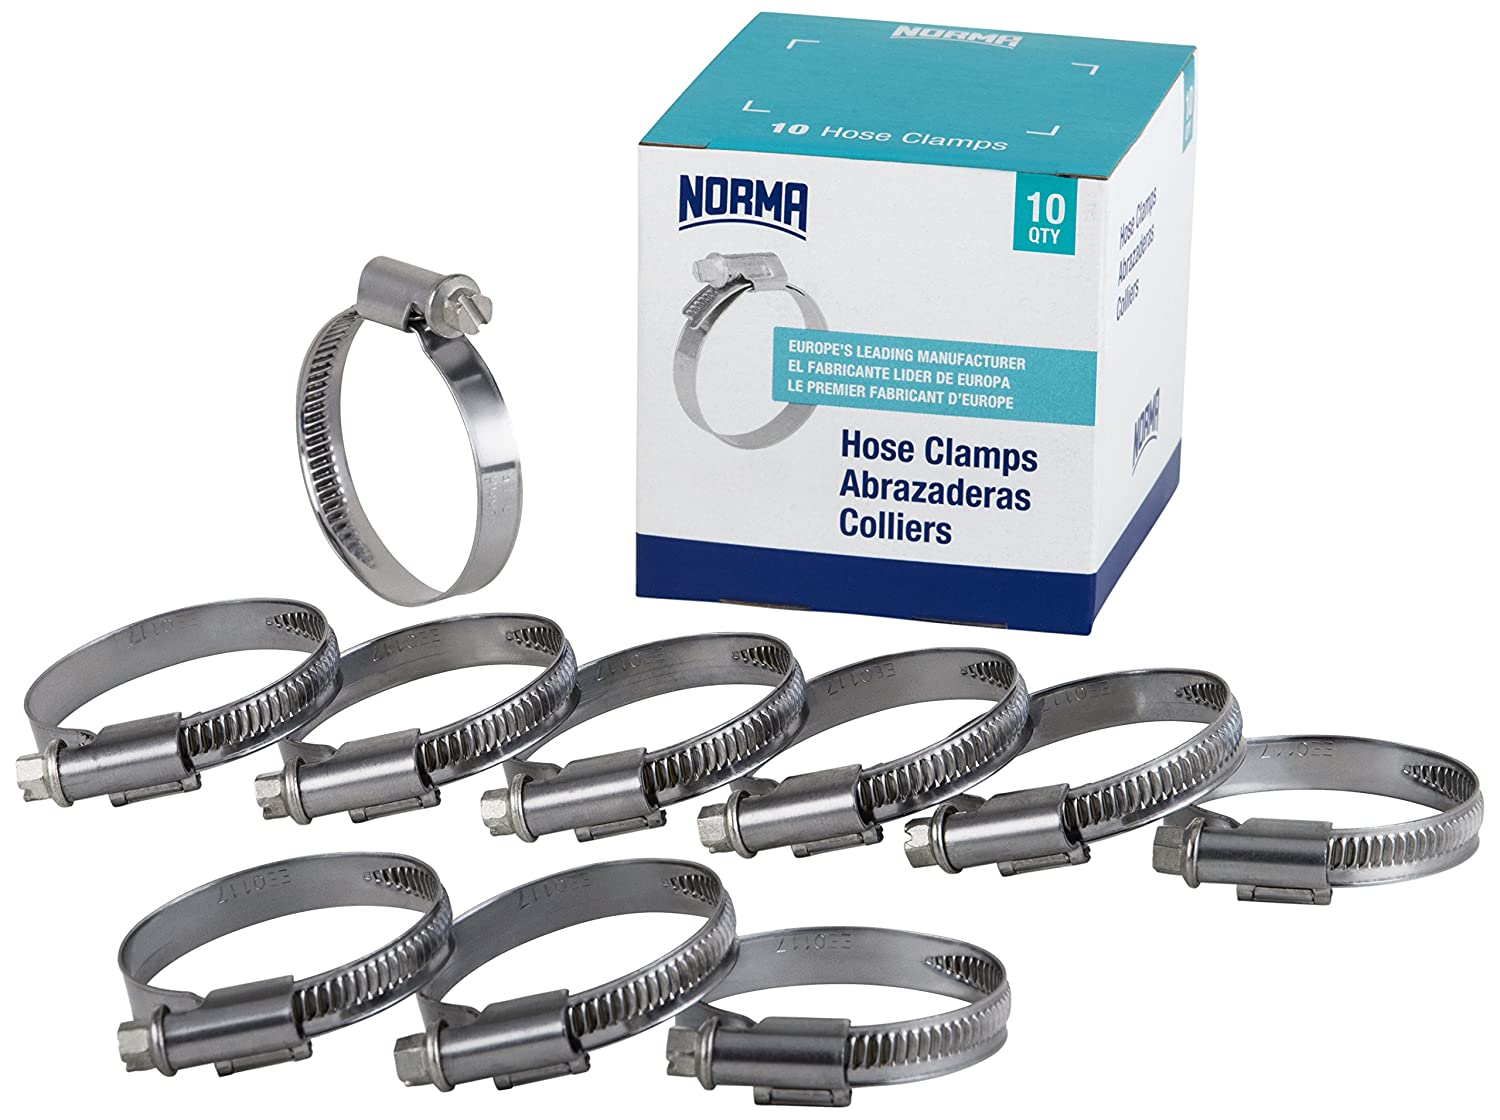 NORMA 01266704013-000-0538 Hose Clamps, 8 mm-16 mm x 9 mm W4 (Pack of 10)